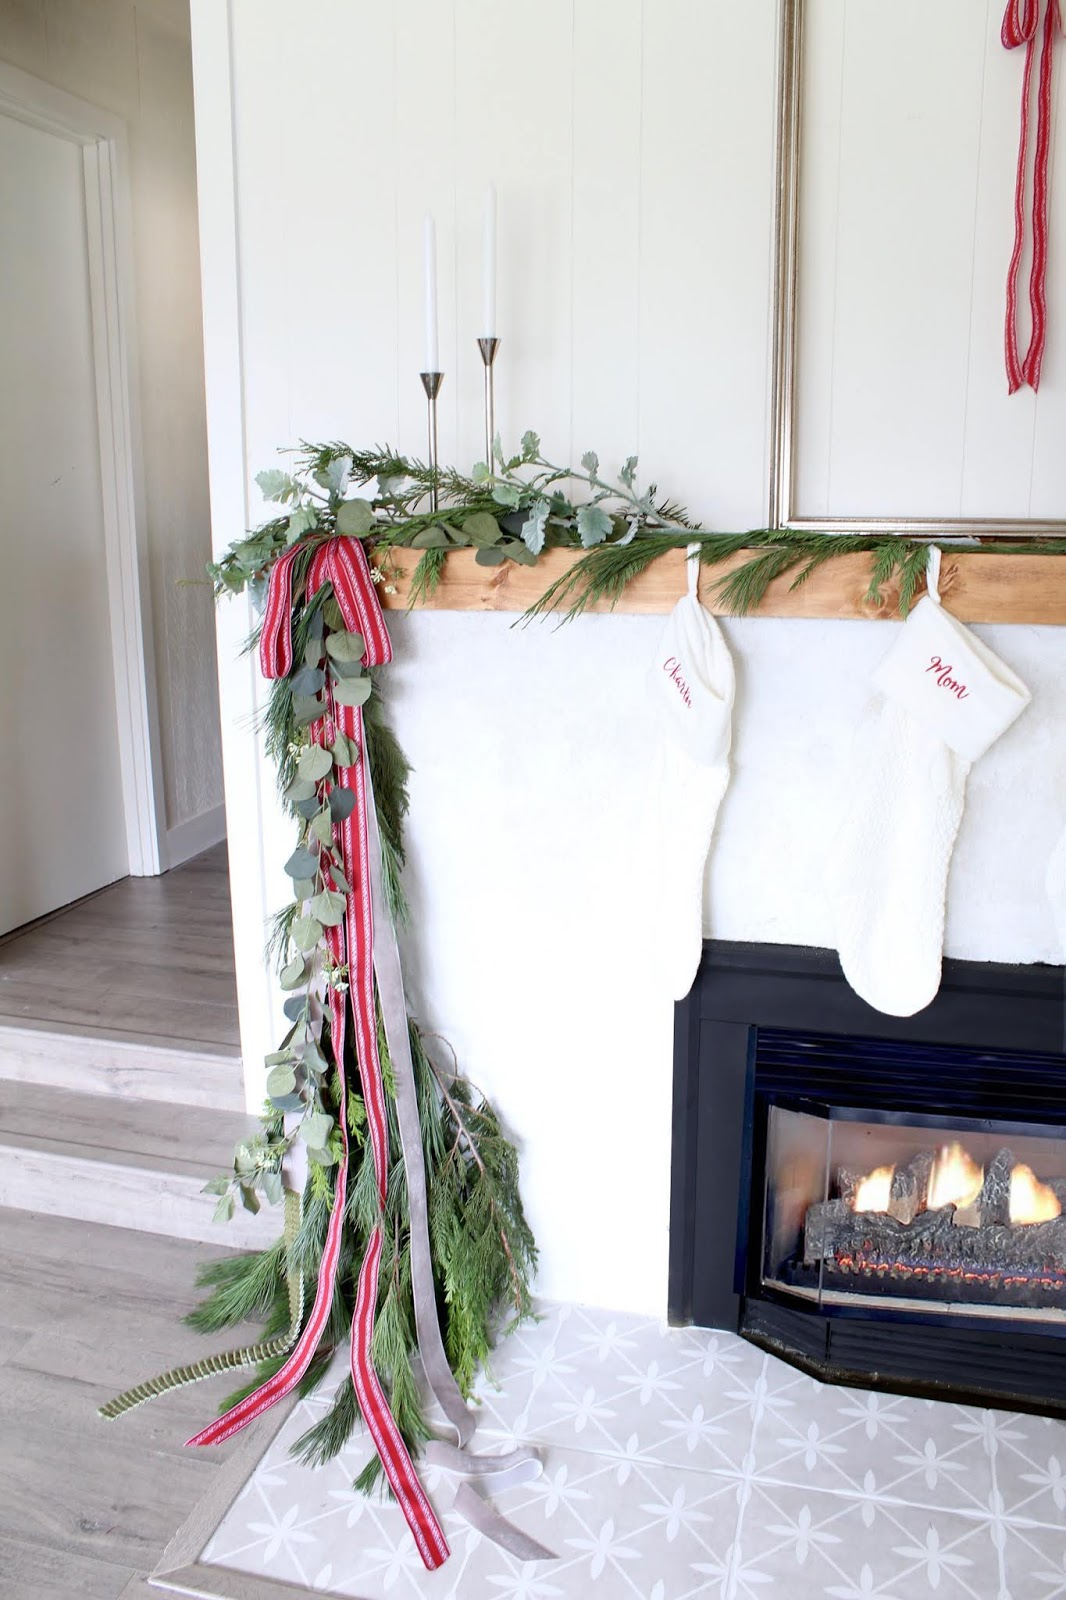 Modern-Holiday-Mantel-ideas-harlow-and-thistle-10